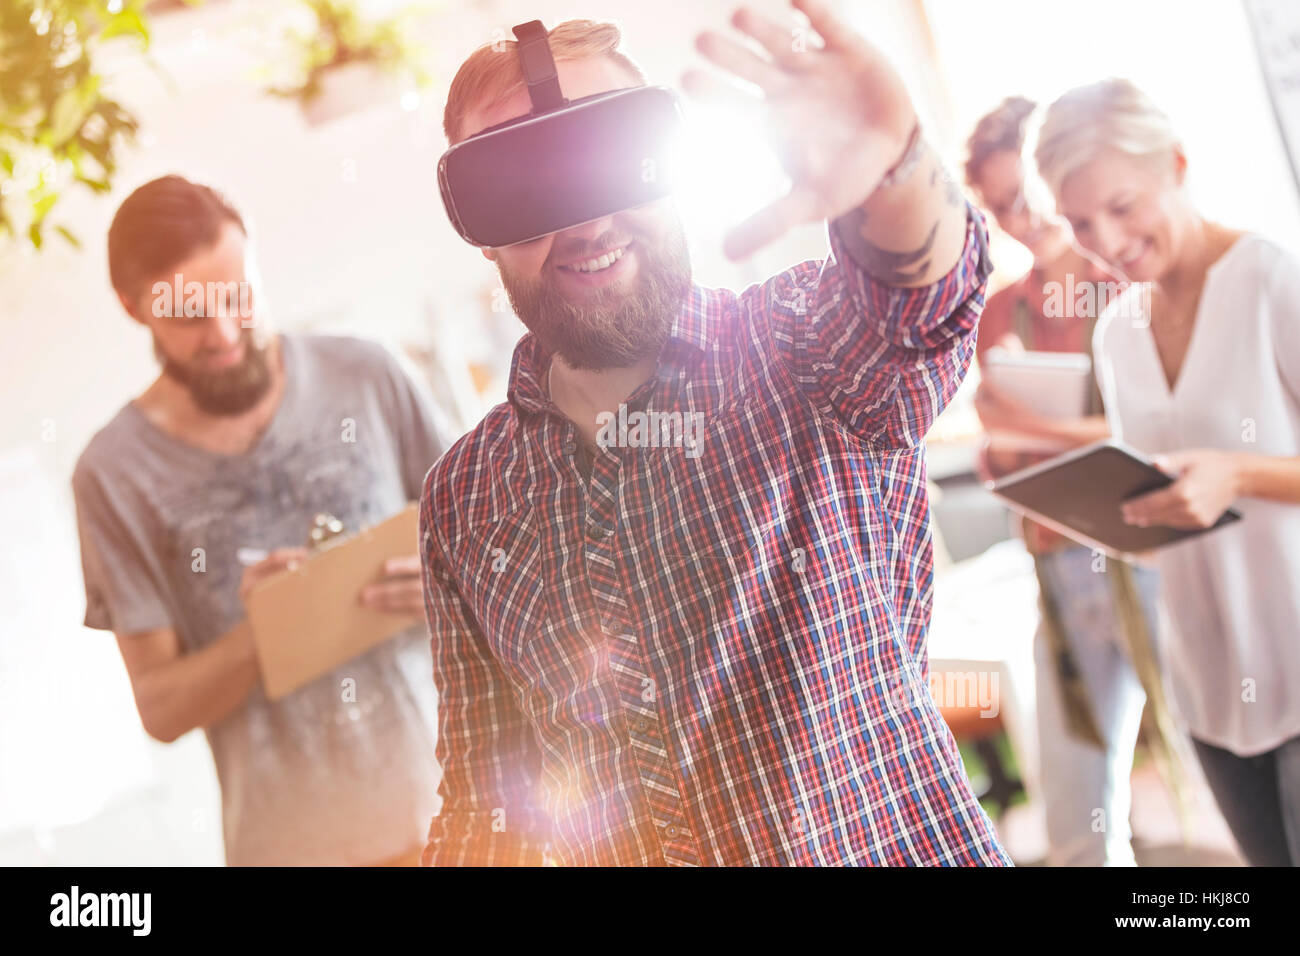 Smiling male design professional using virtual reality simulator glasses in meeting - Stock Image